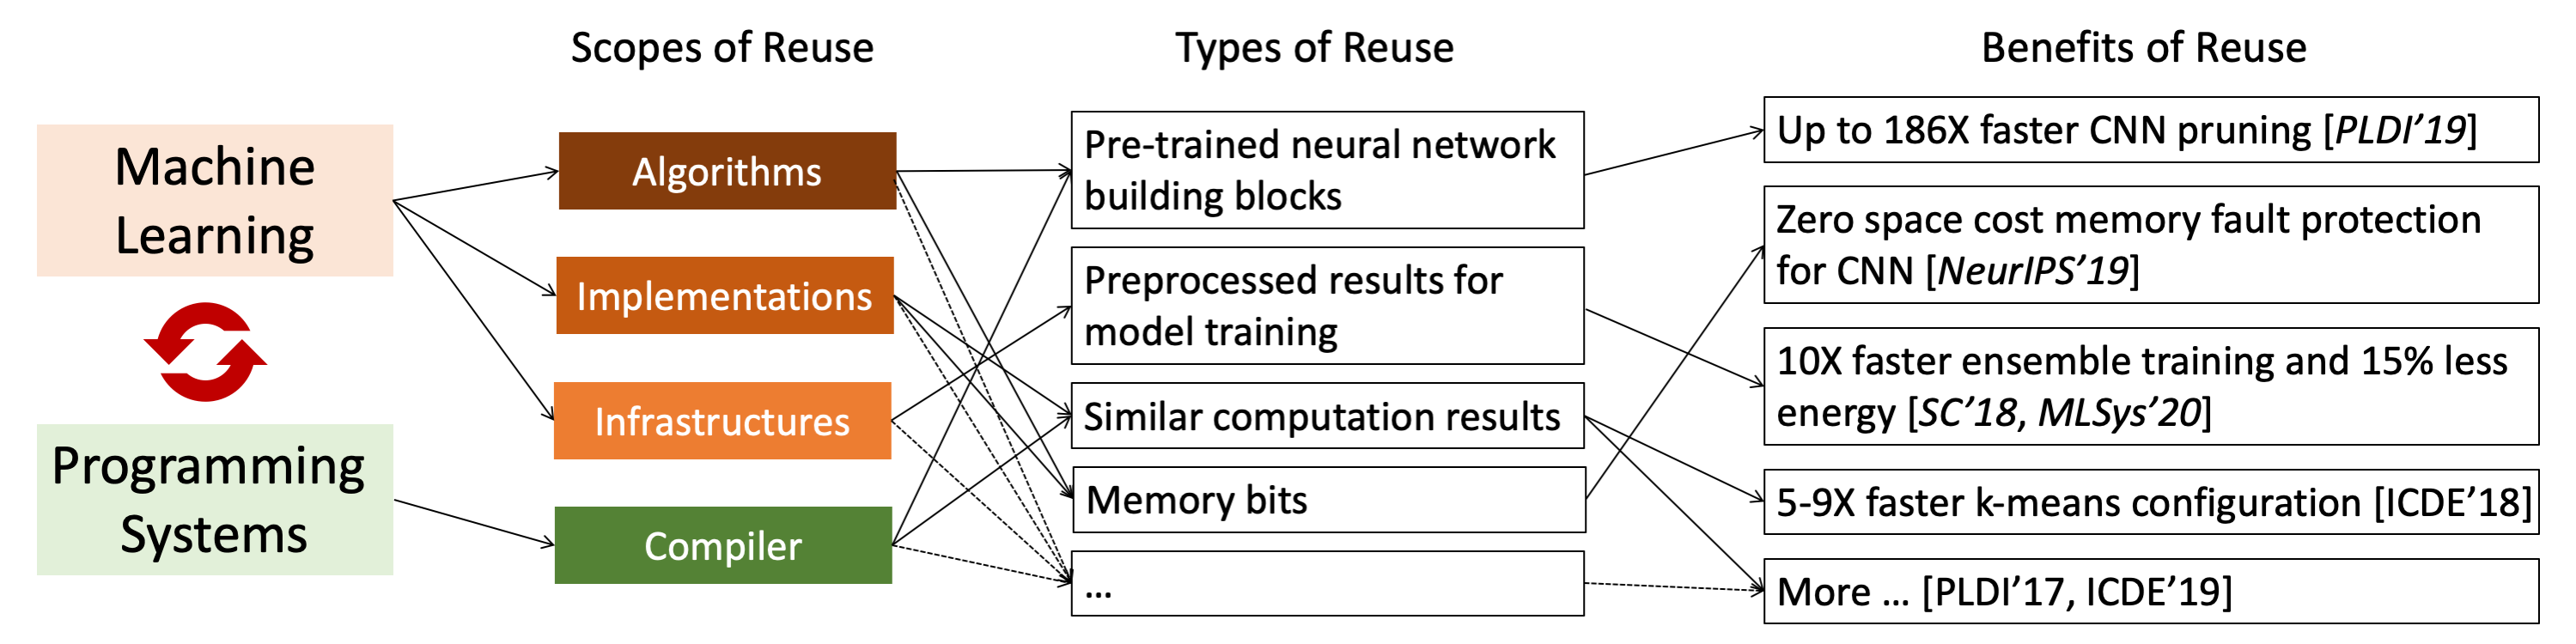 Reuse-Centric Optimization